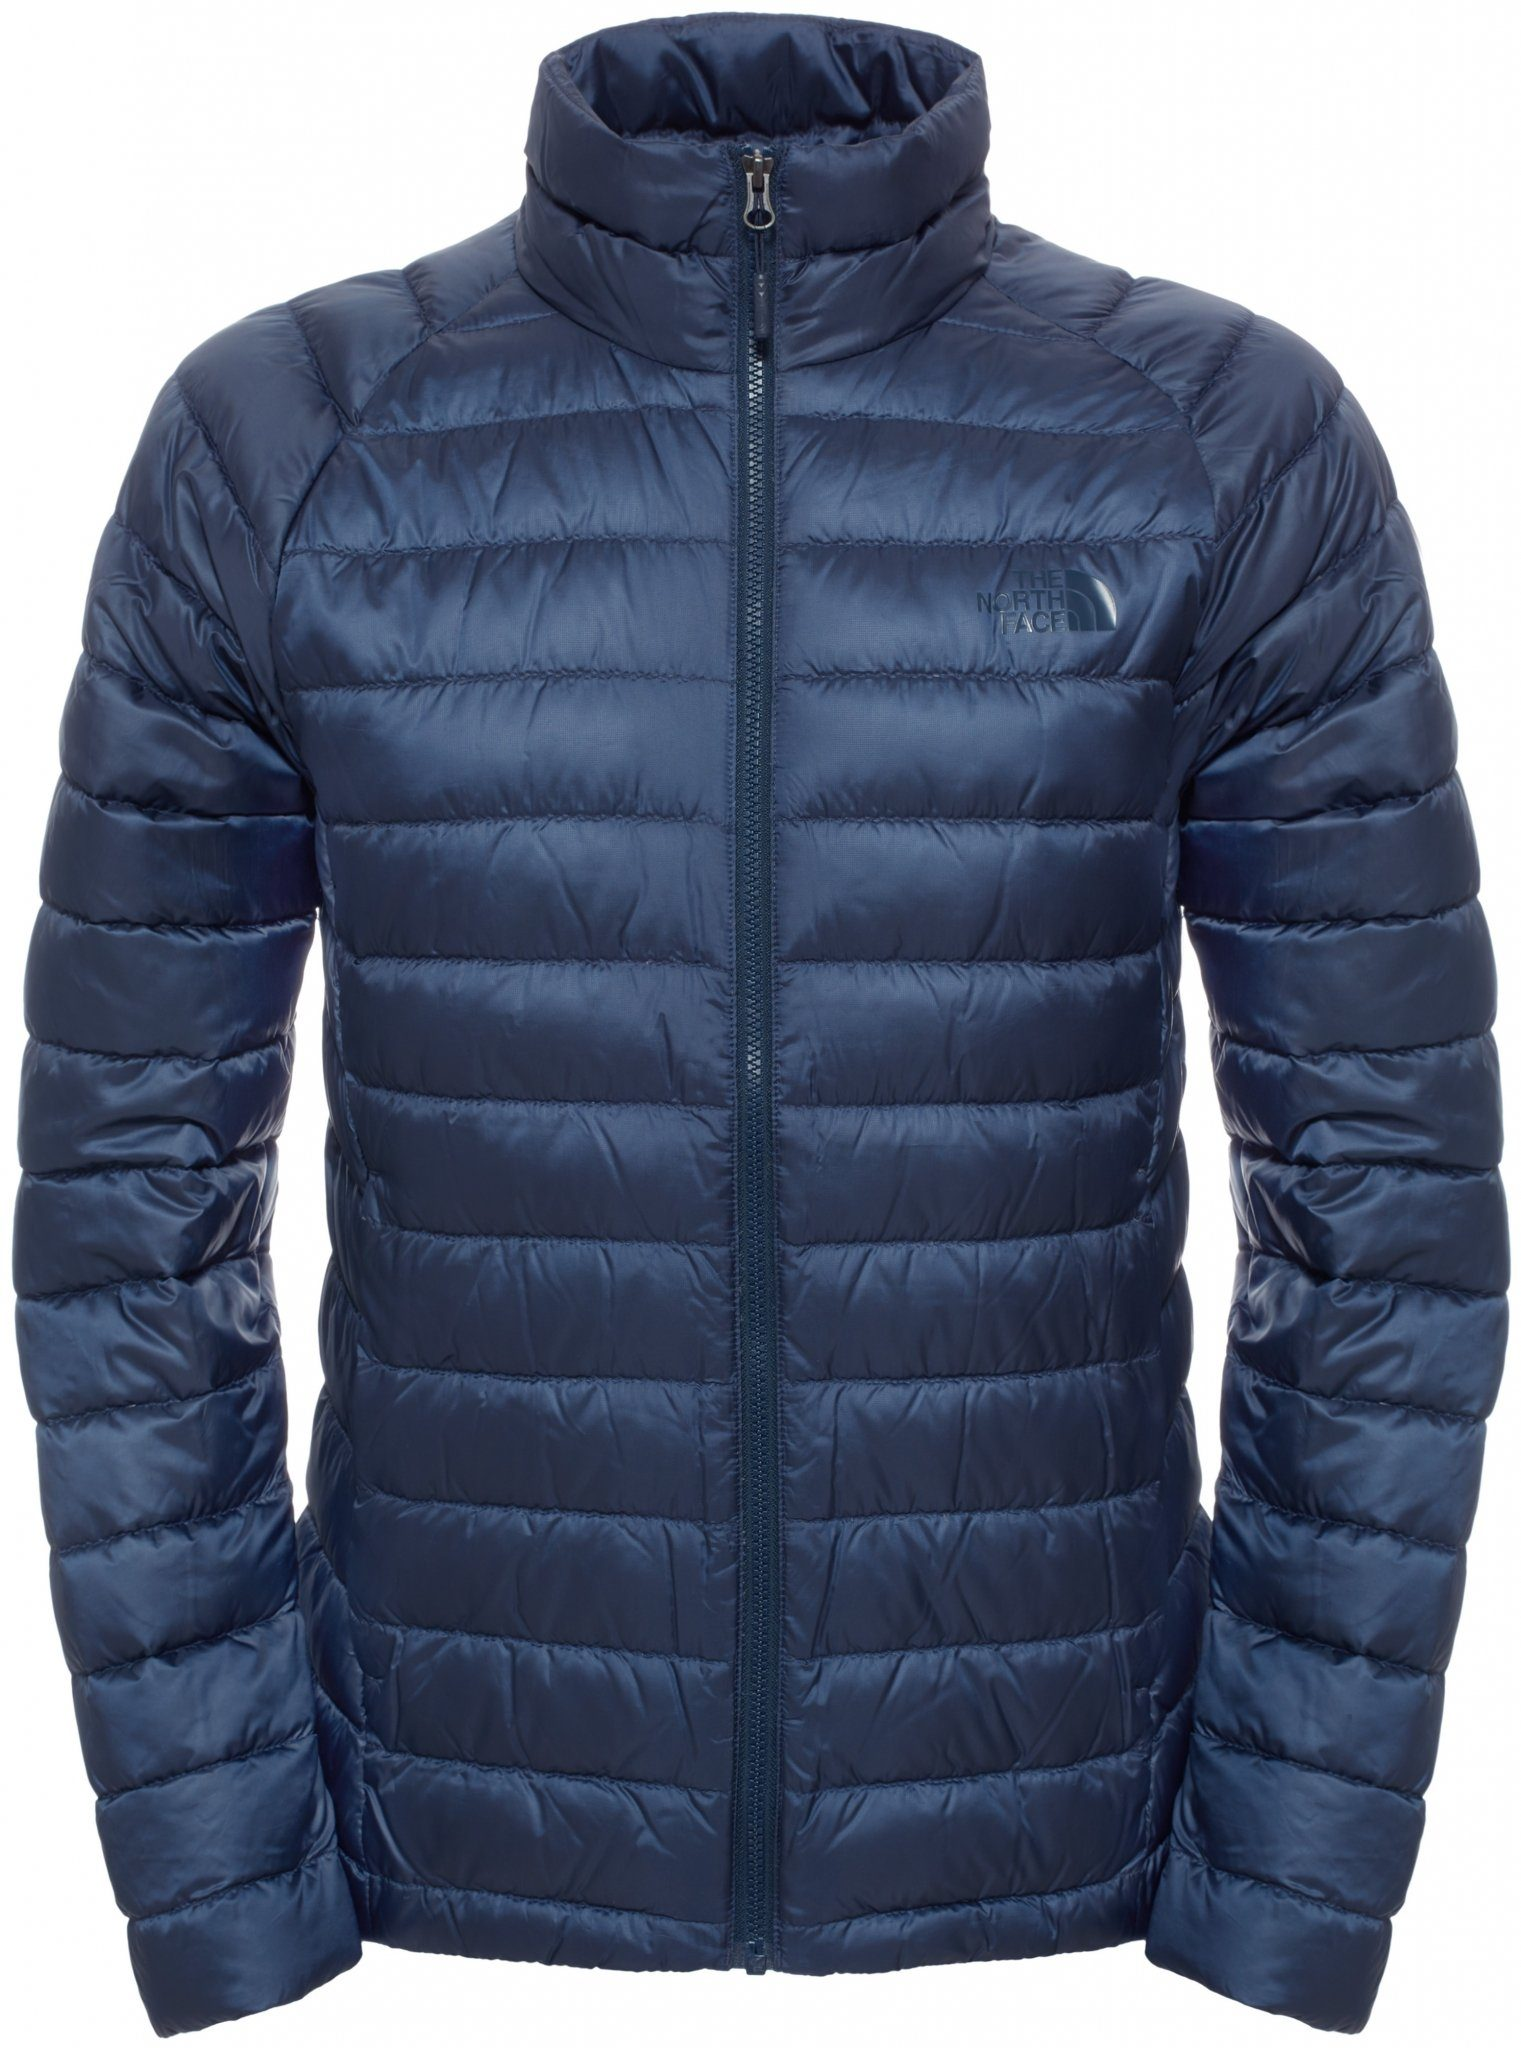 The North Face Outdoorjacke »Trevail Jacket Men«